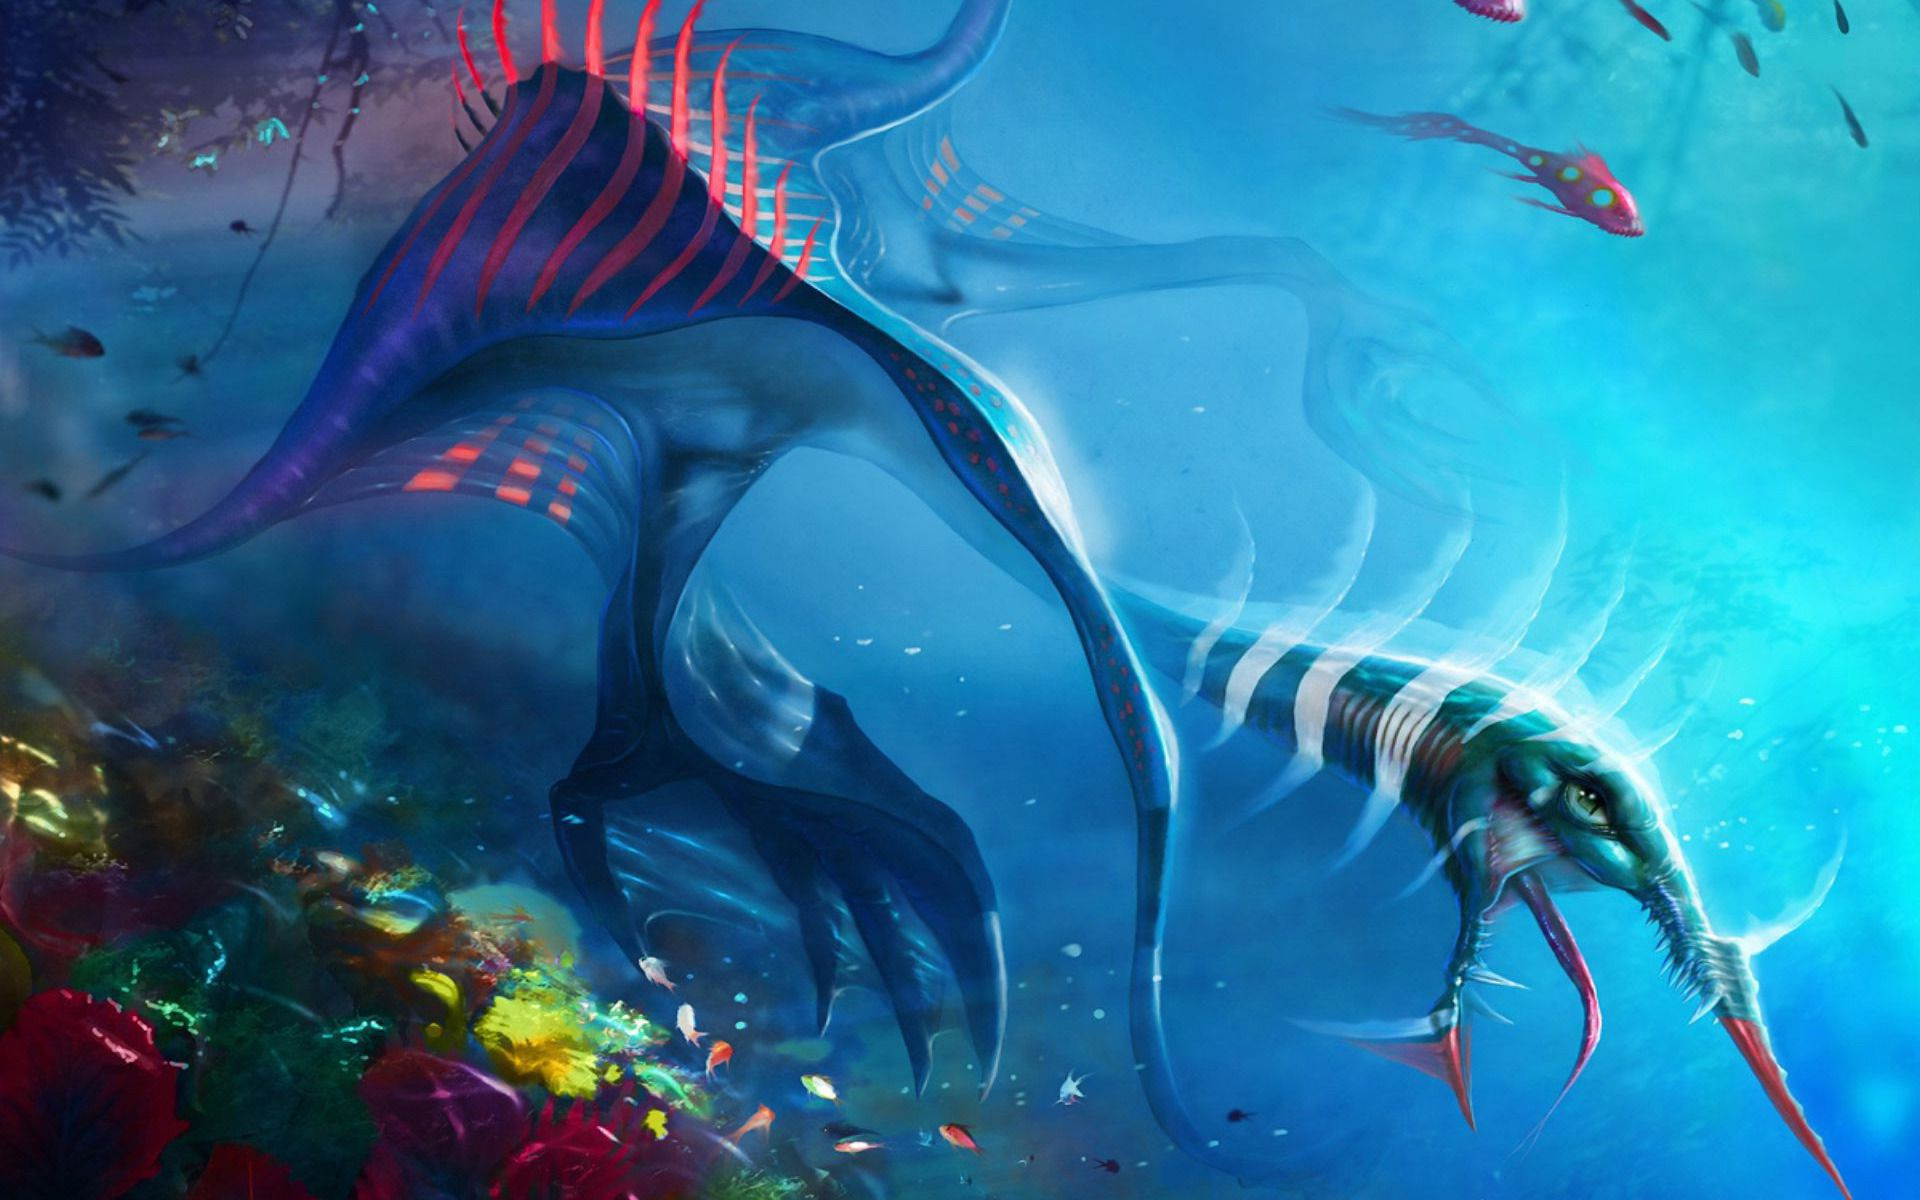 Free Download Animated Wallpapers For Windows 7 Ultimate Sea Monster Hd Wallpaper Background Image 1920x1200